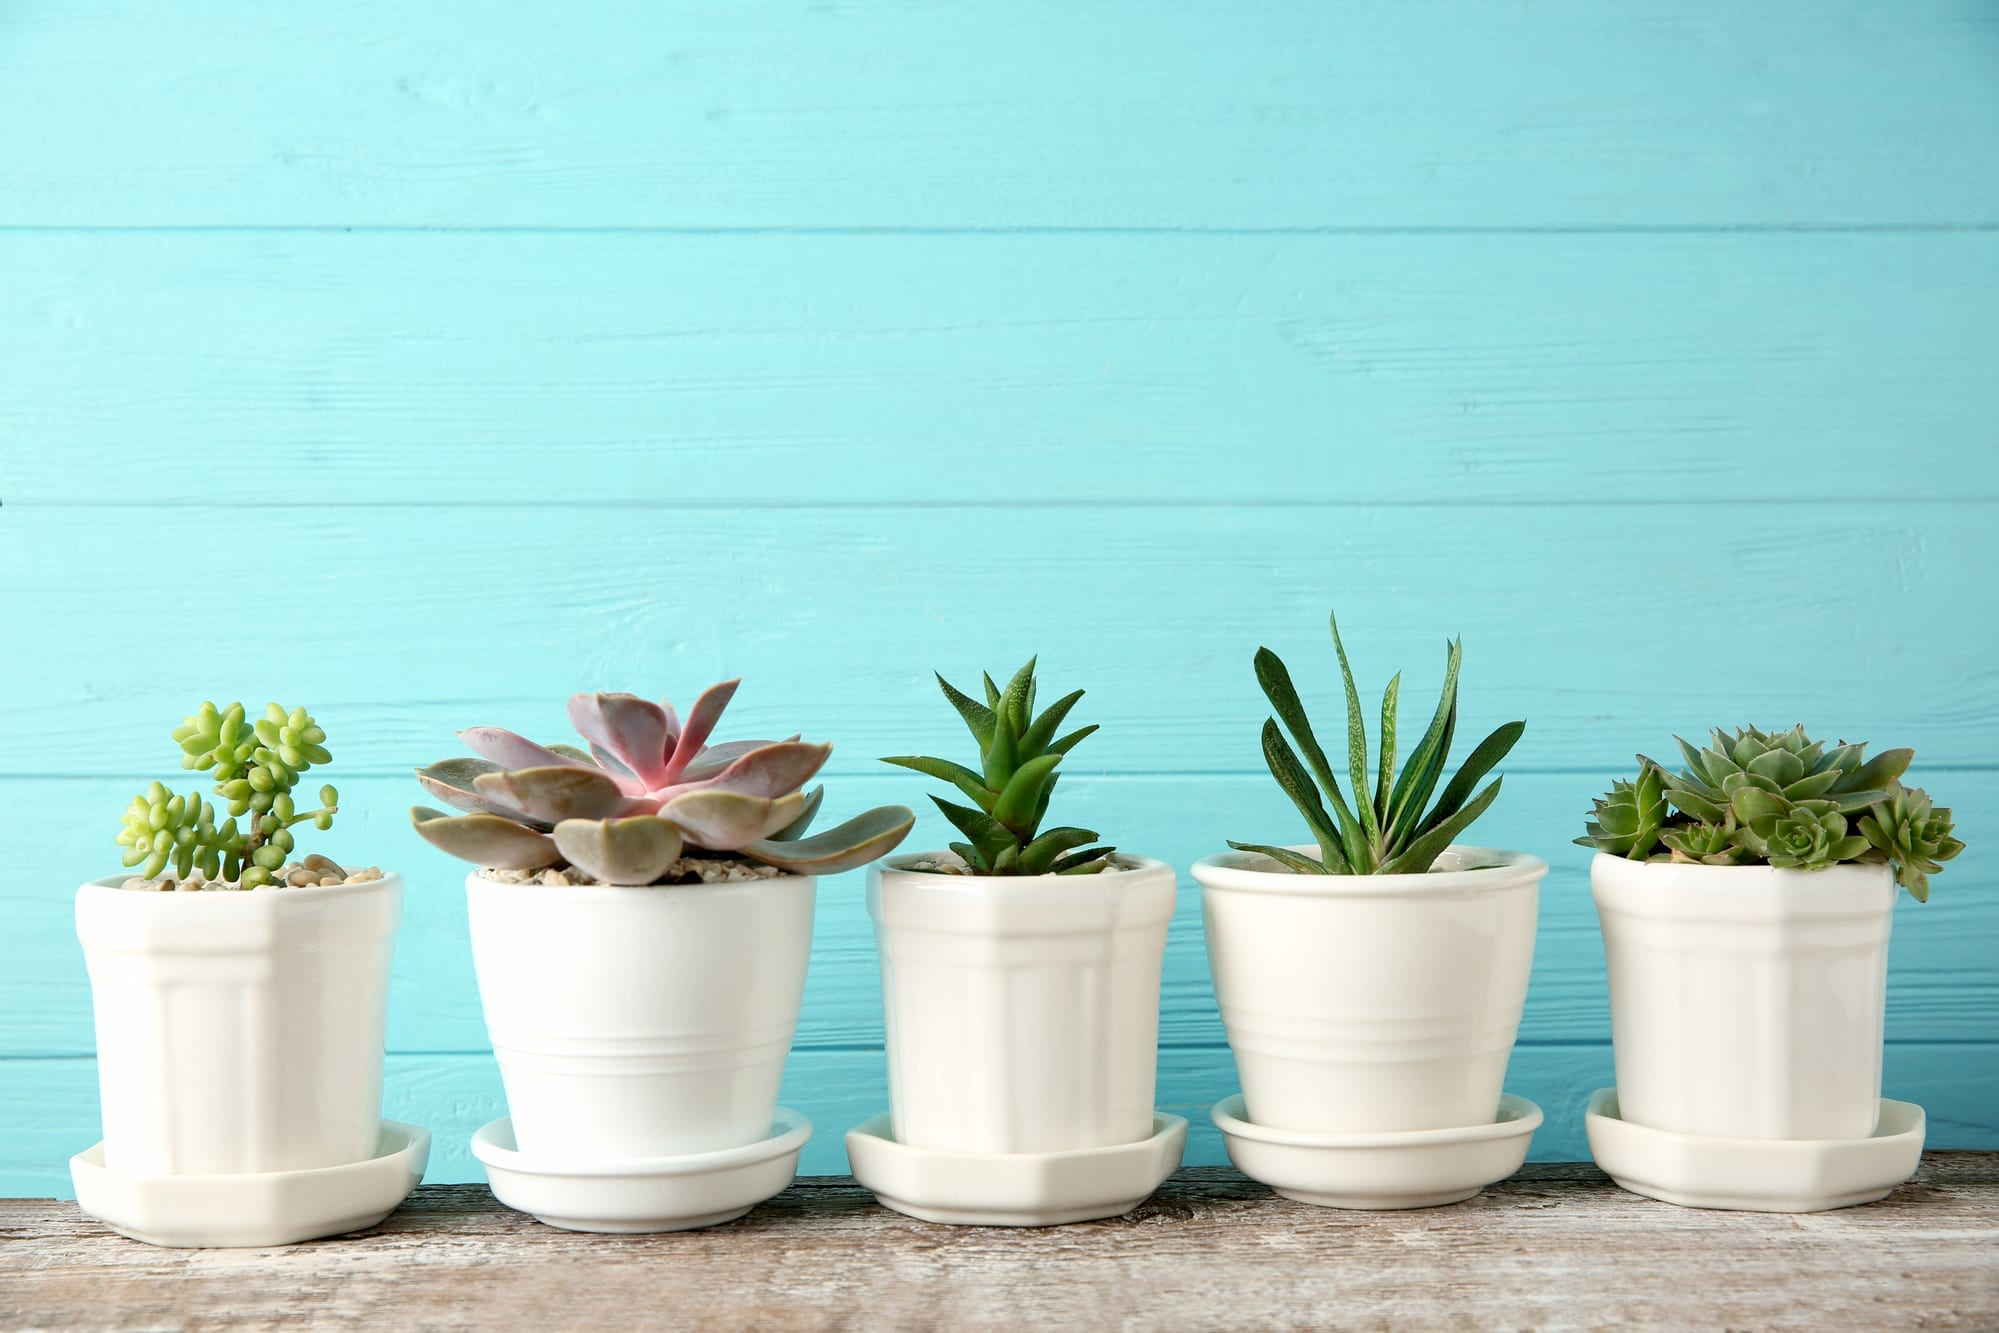 Potted plants against a blue wall